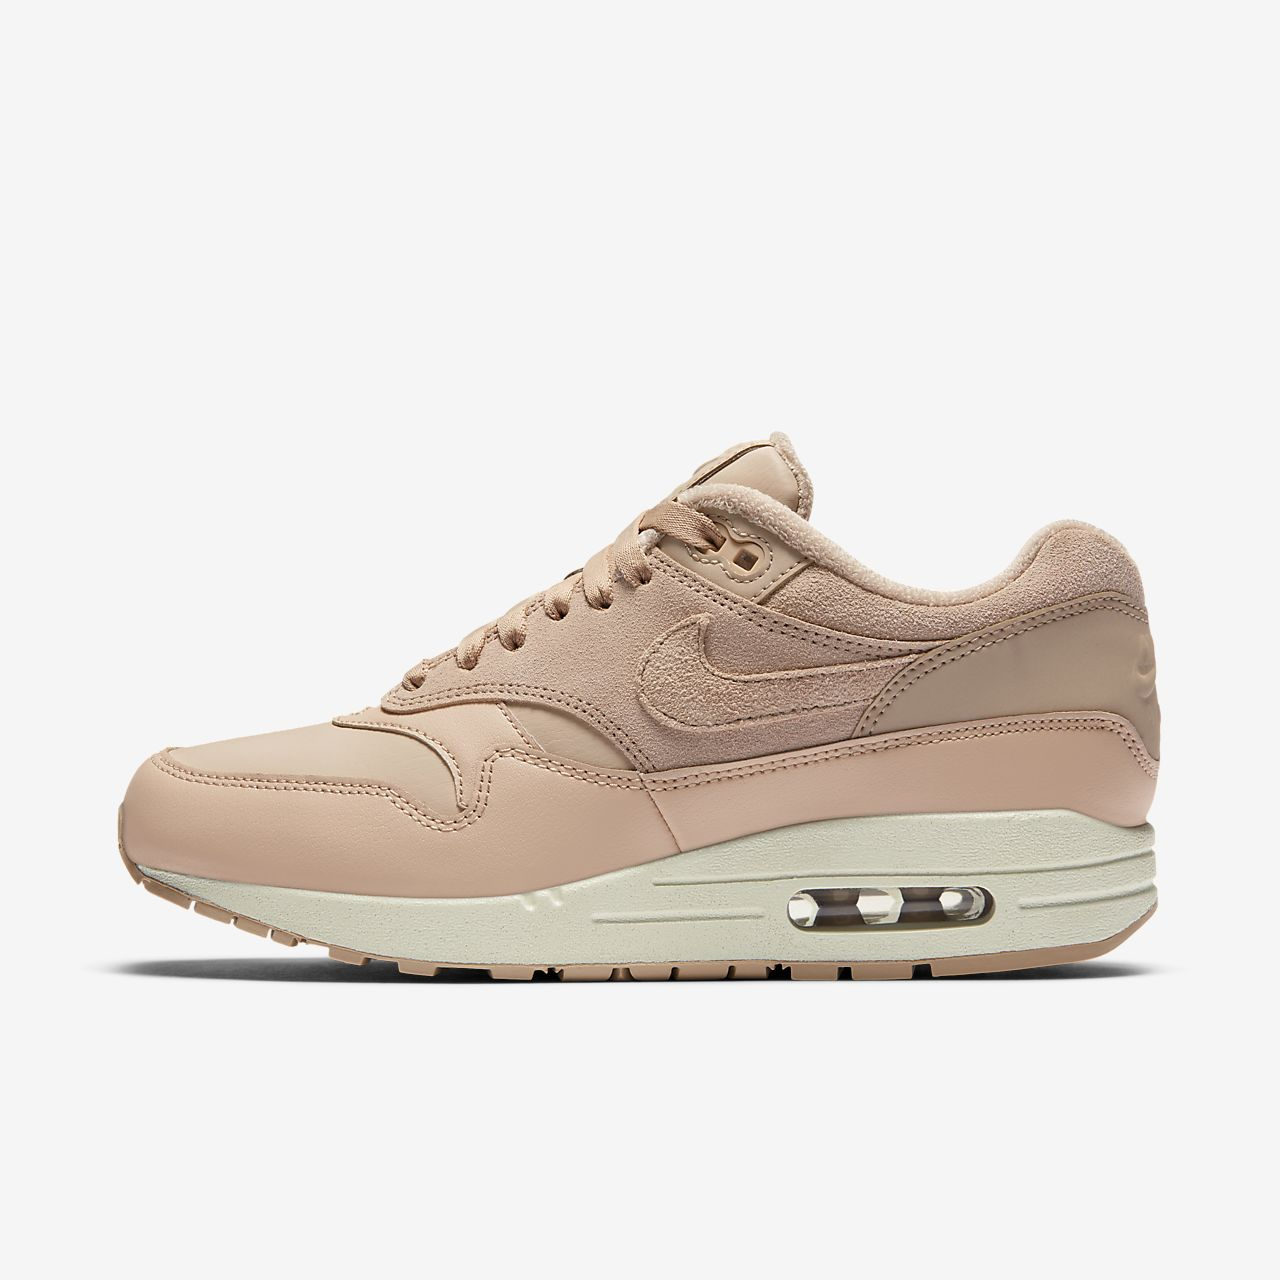 cb5060909d7a Nike Air Max 1 Premium Winterized Women s Shoe. Nike.com AE